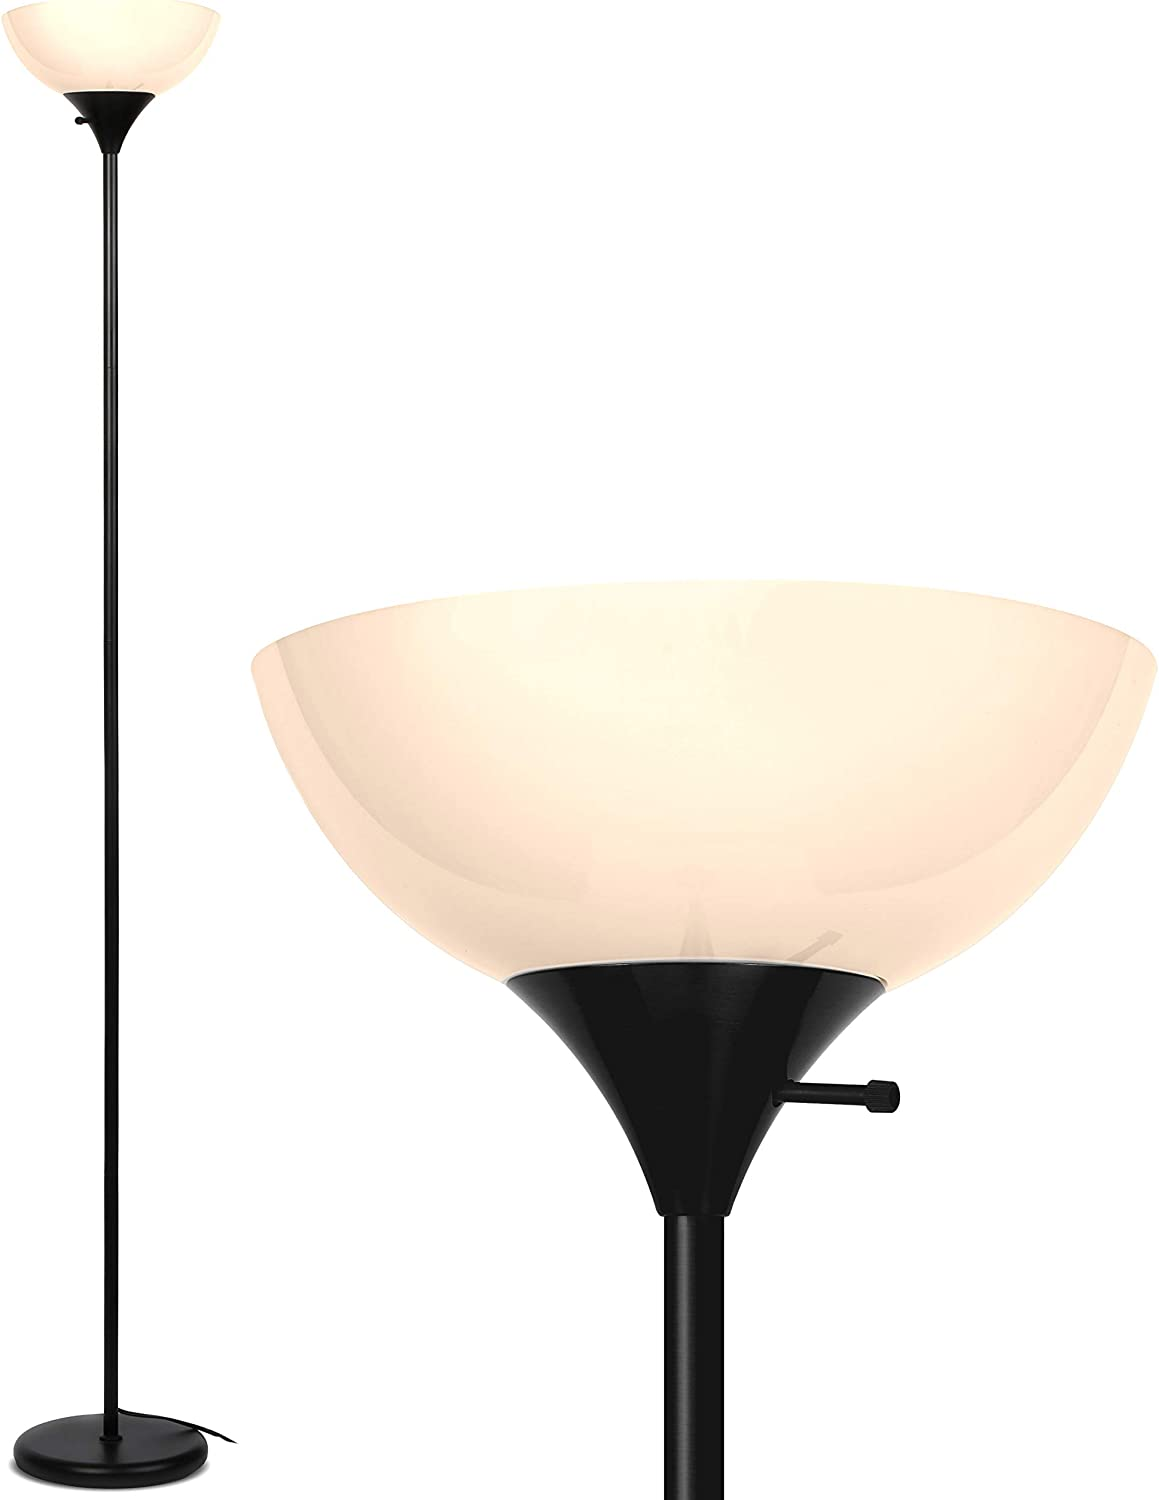 Brightech Sky Dome - Very Bright LED Torchiere Floor Lamp for Living Rooms & Offices– Dimmable Modern Standing Lamp – Tall Pole Light for Bedrooms – LED Bulb Included - Jet Black